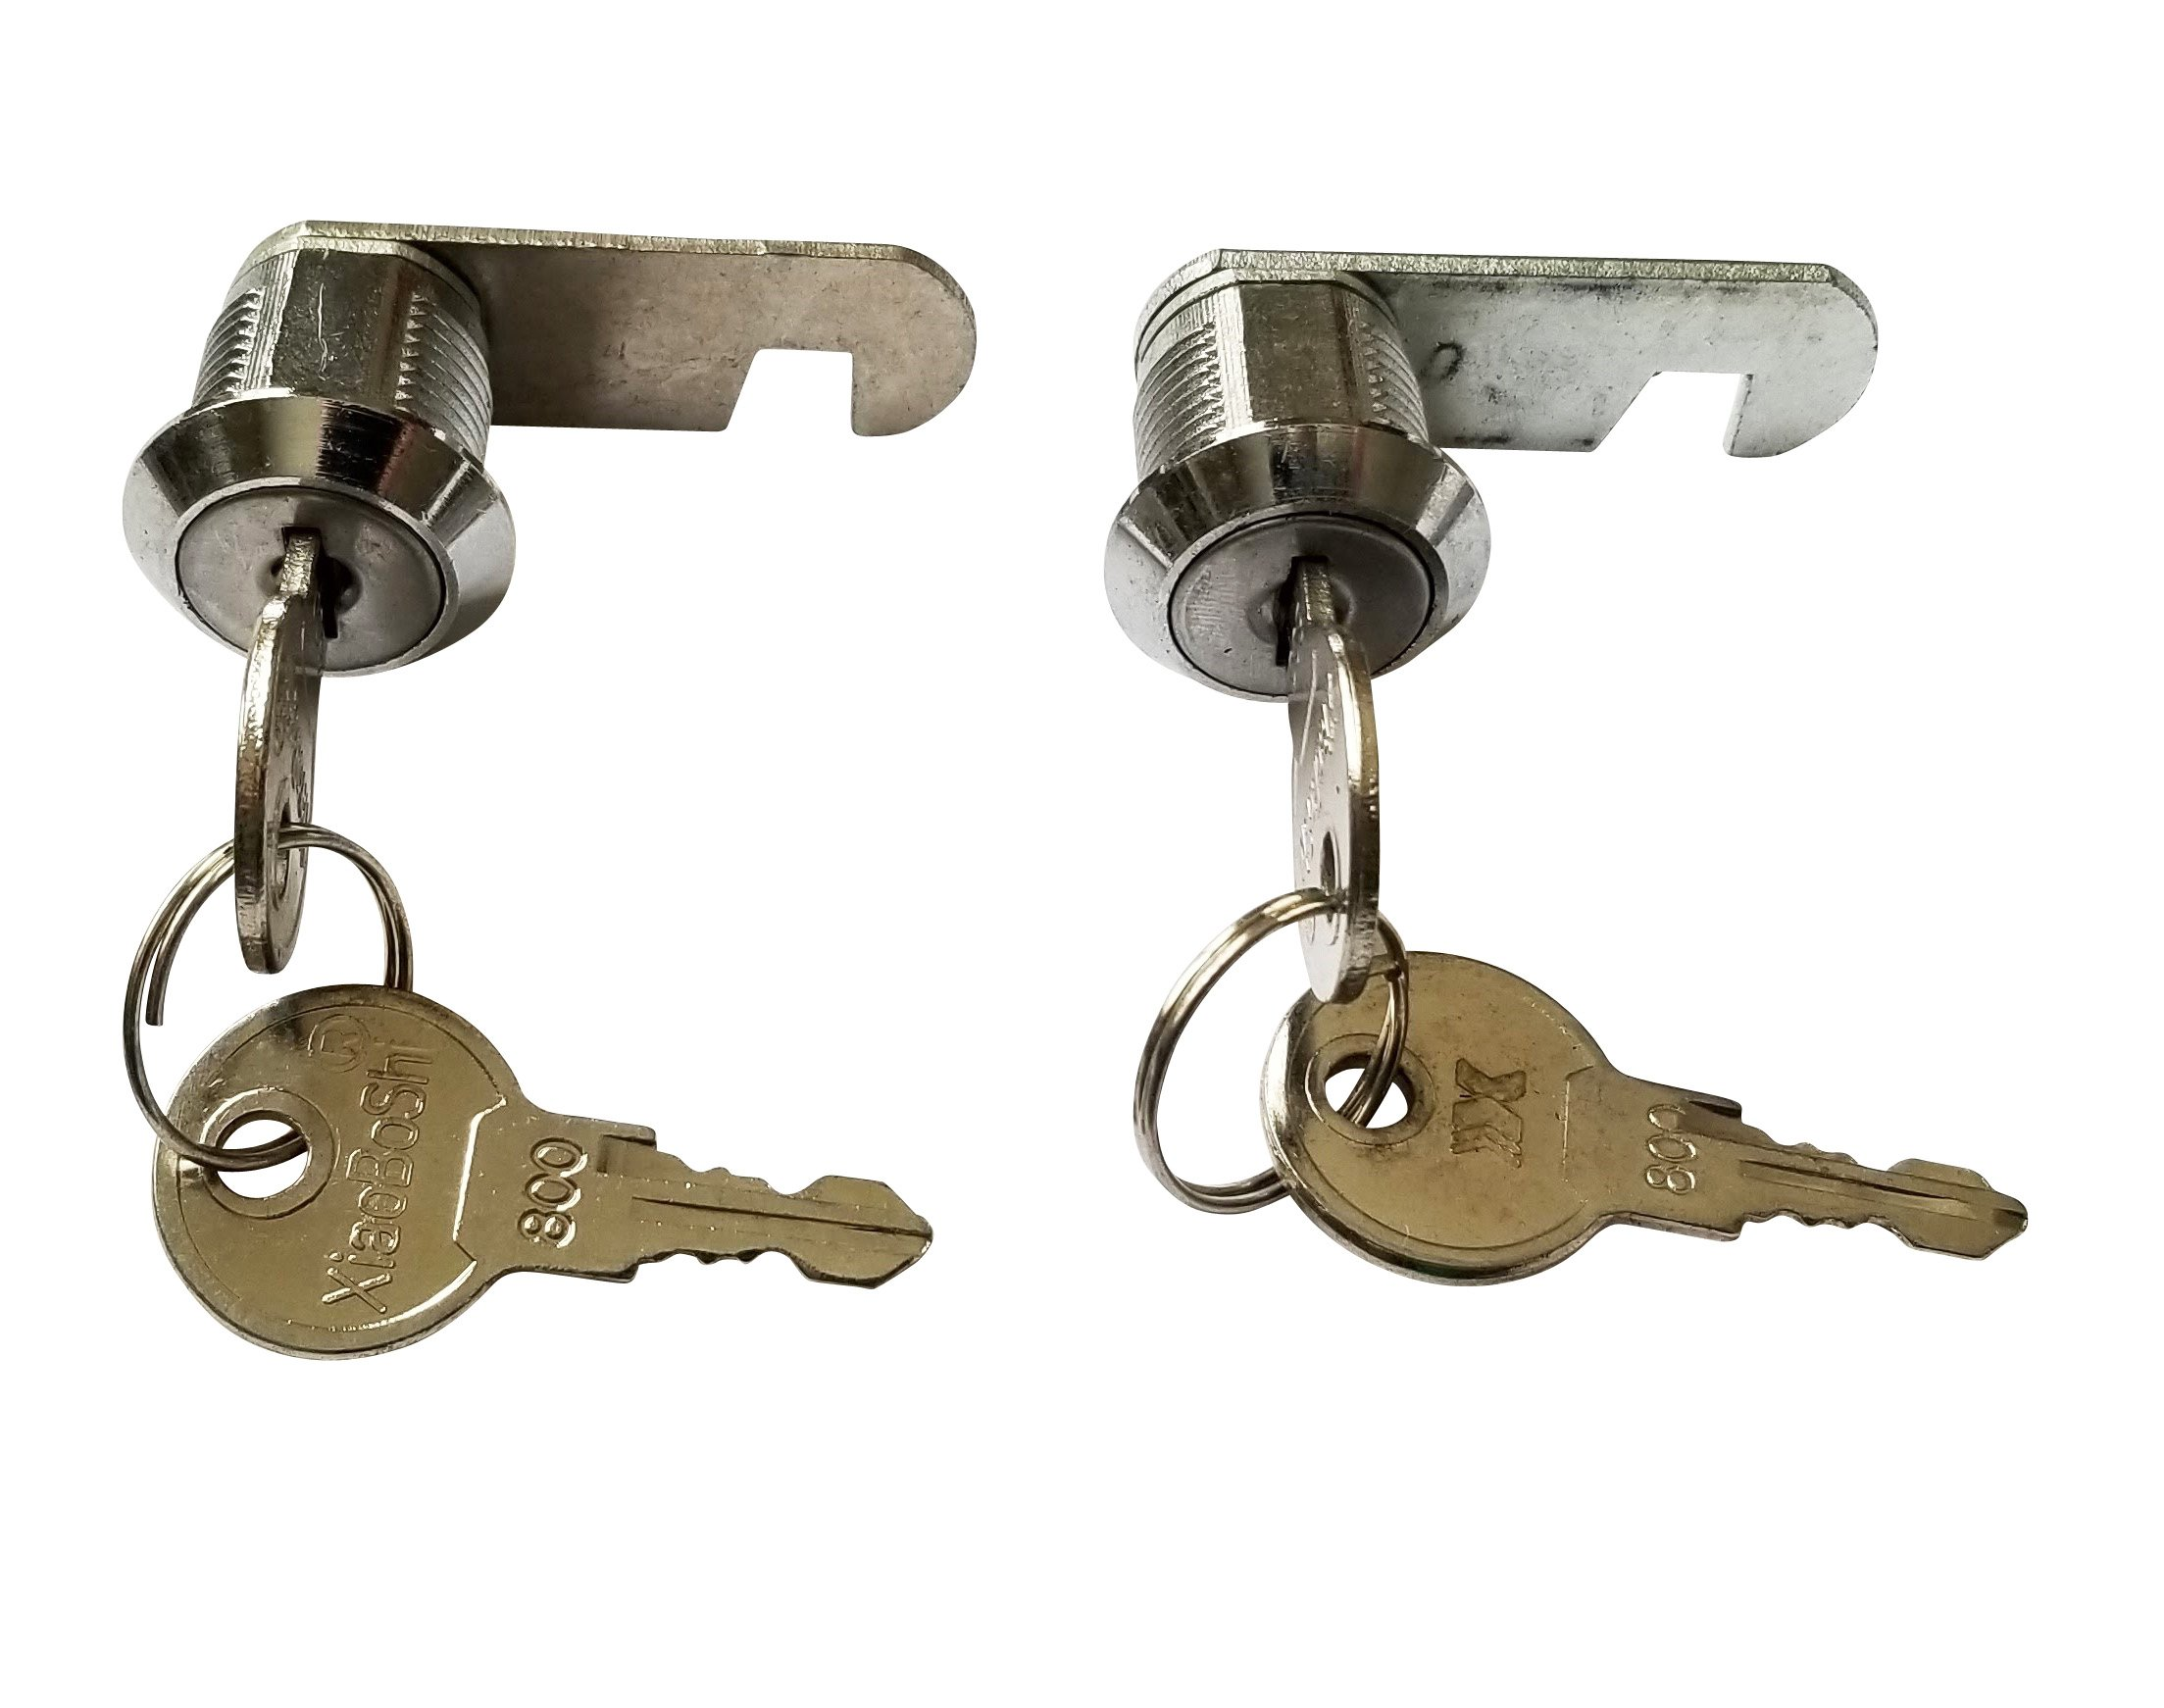 5/8 inch or 16mm Cam Lock with Flat Keys. 16mm 5/8 Cylinder and Chrome Finish, Keyed Alike (Pack of 2)